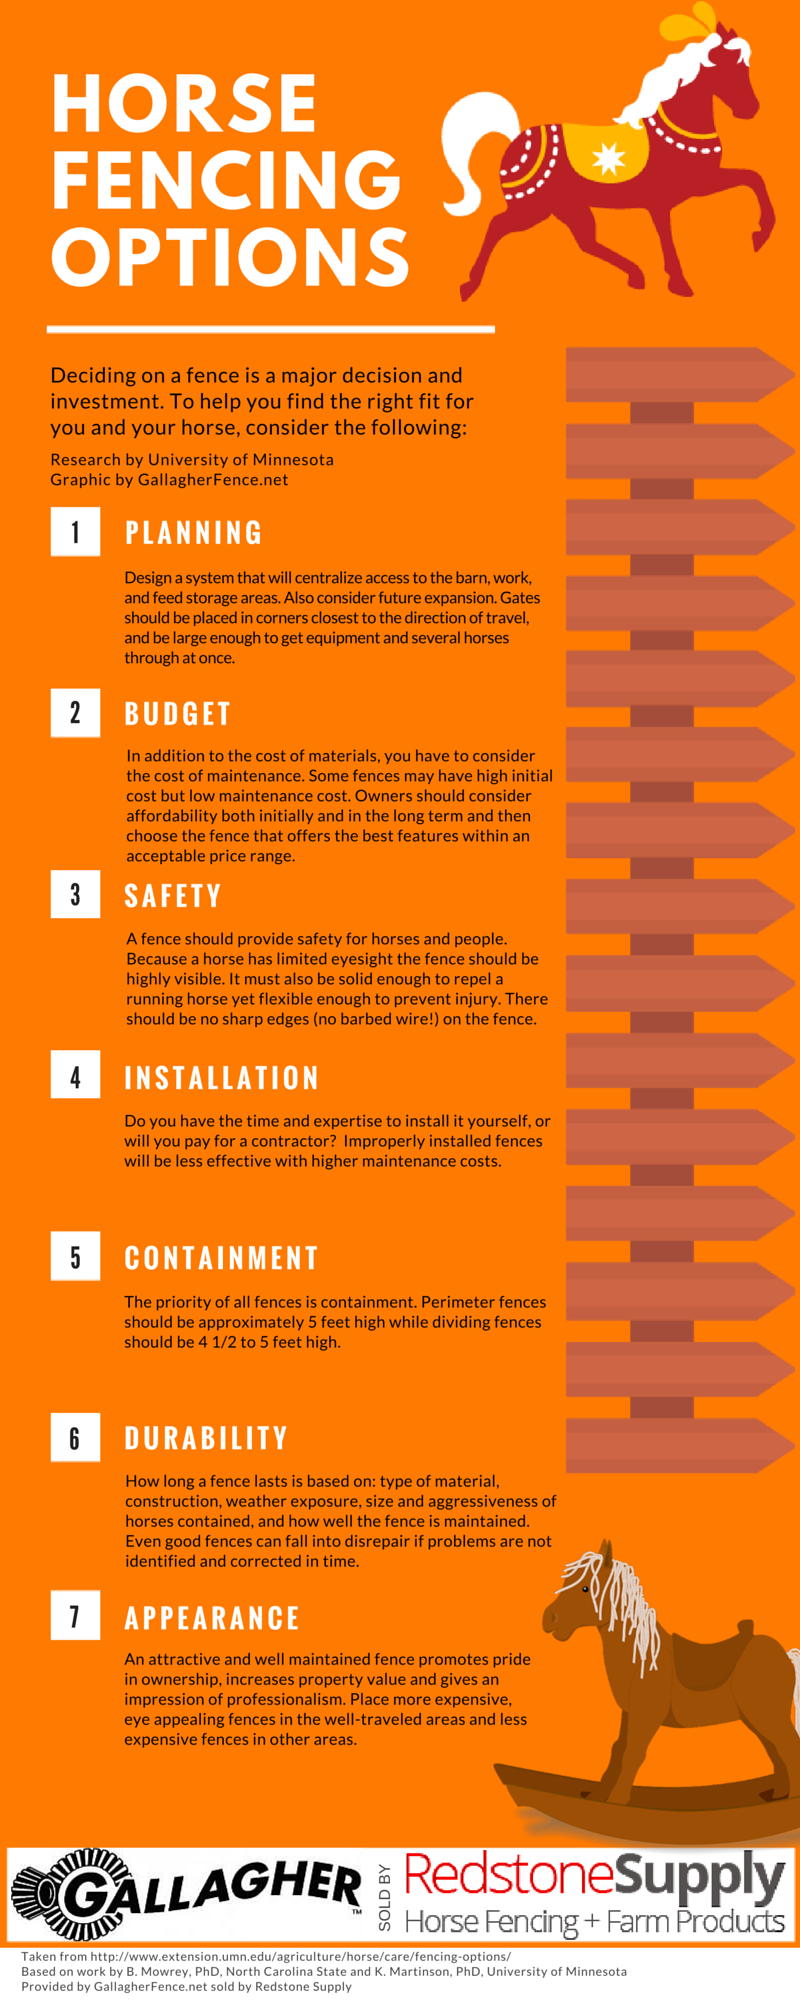 Horse Fencing Options Infographic Gallagher Fence